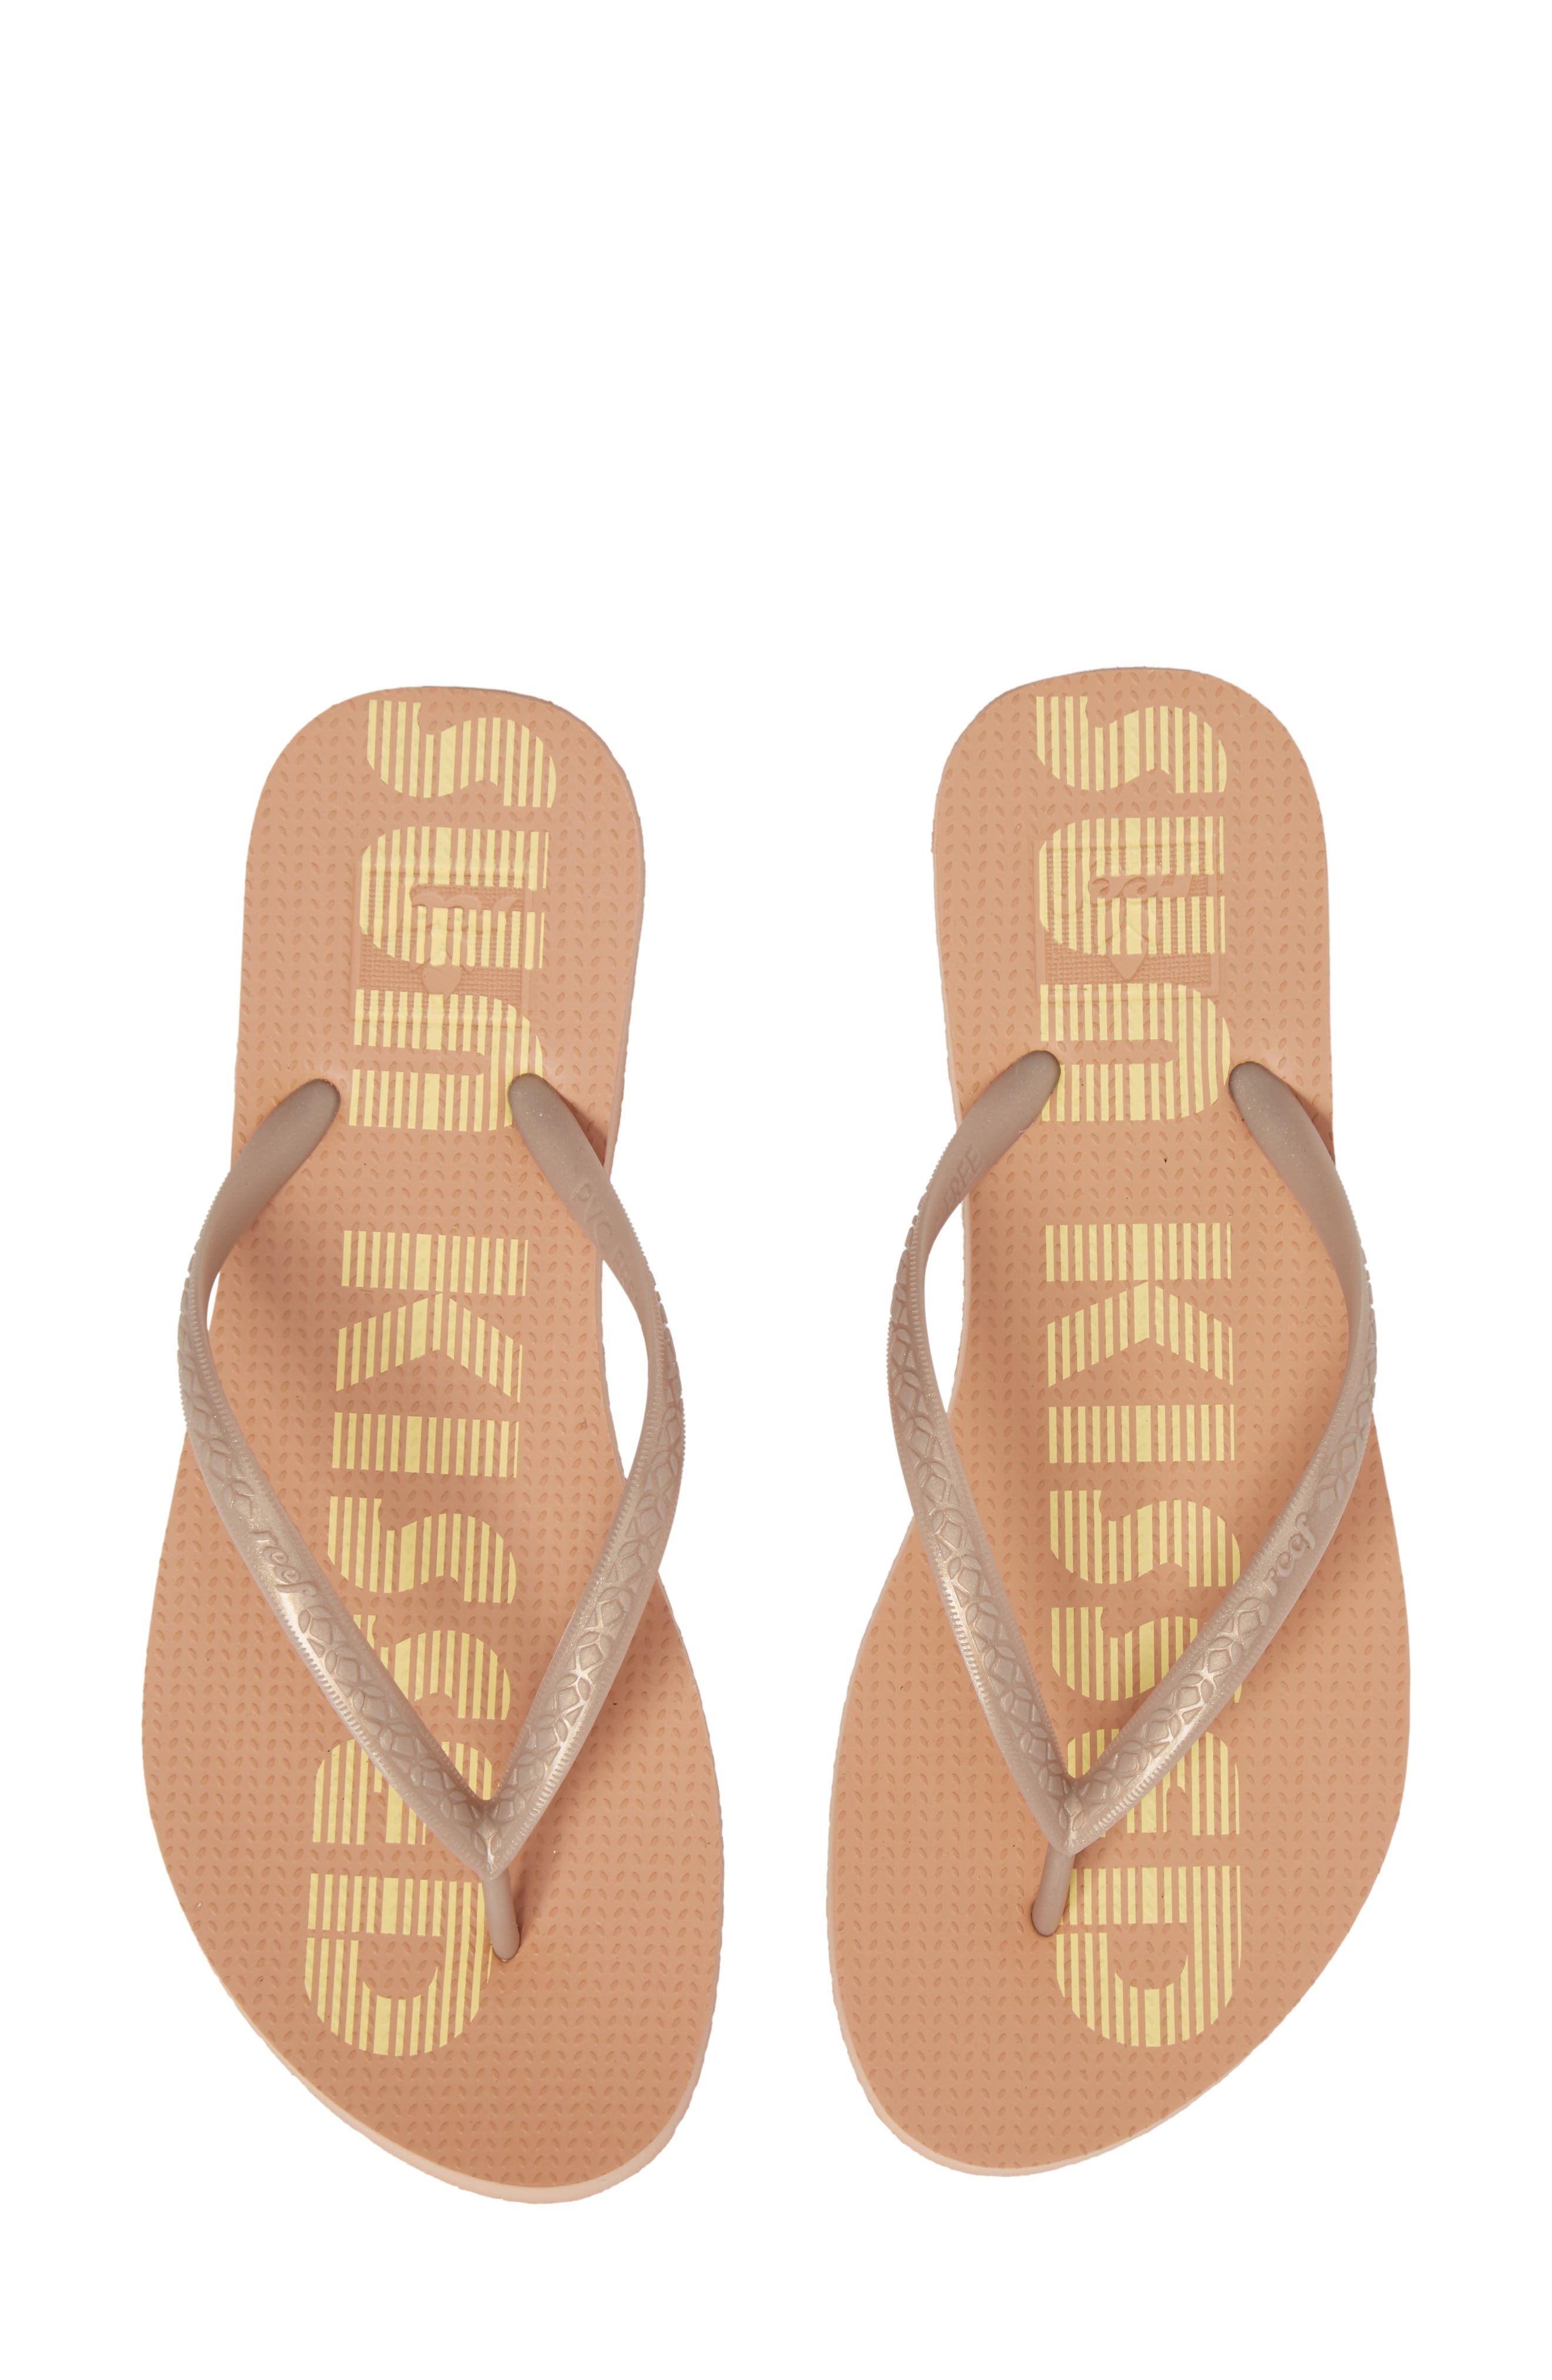 Escape Flip Flop,                         Main,                         color, SUNKISSED